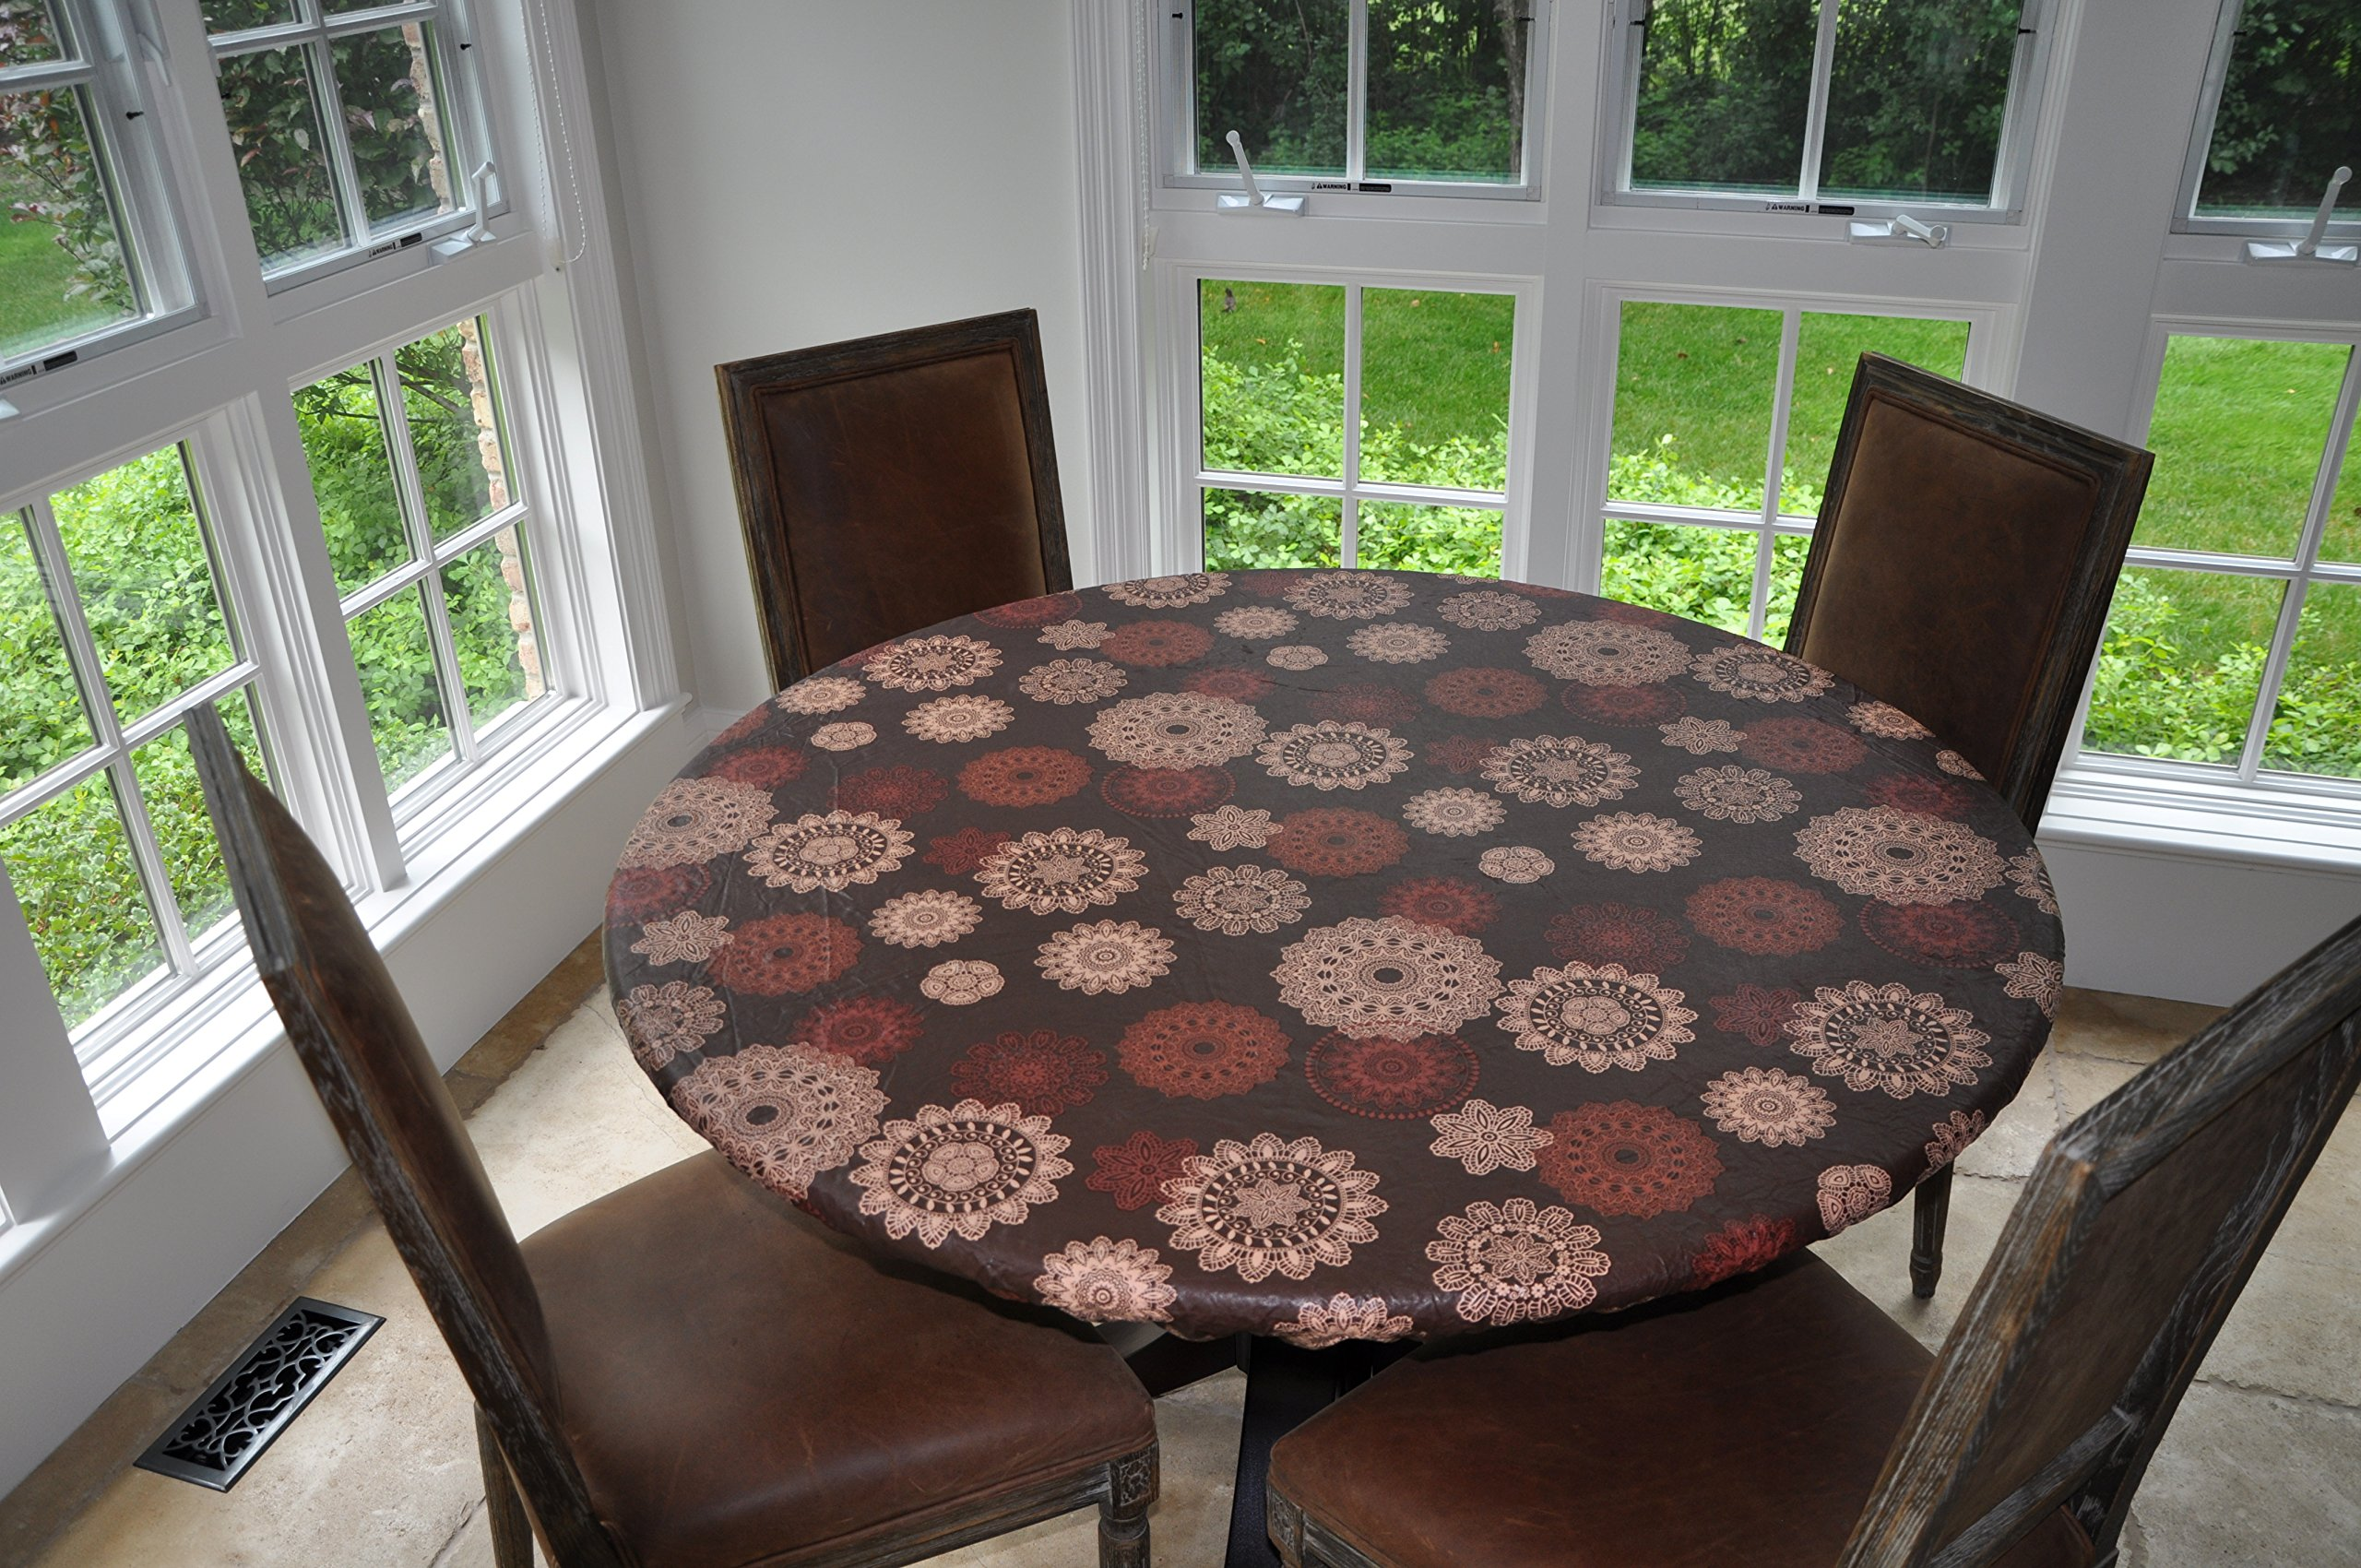 "Elastic Edged Flannel Backed Vinyl Fitted Table Cover - Medallion Pattern - Large Round - Fits Tables up to 45'' - 56"" Diameter"